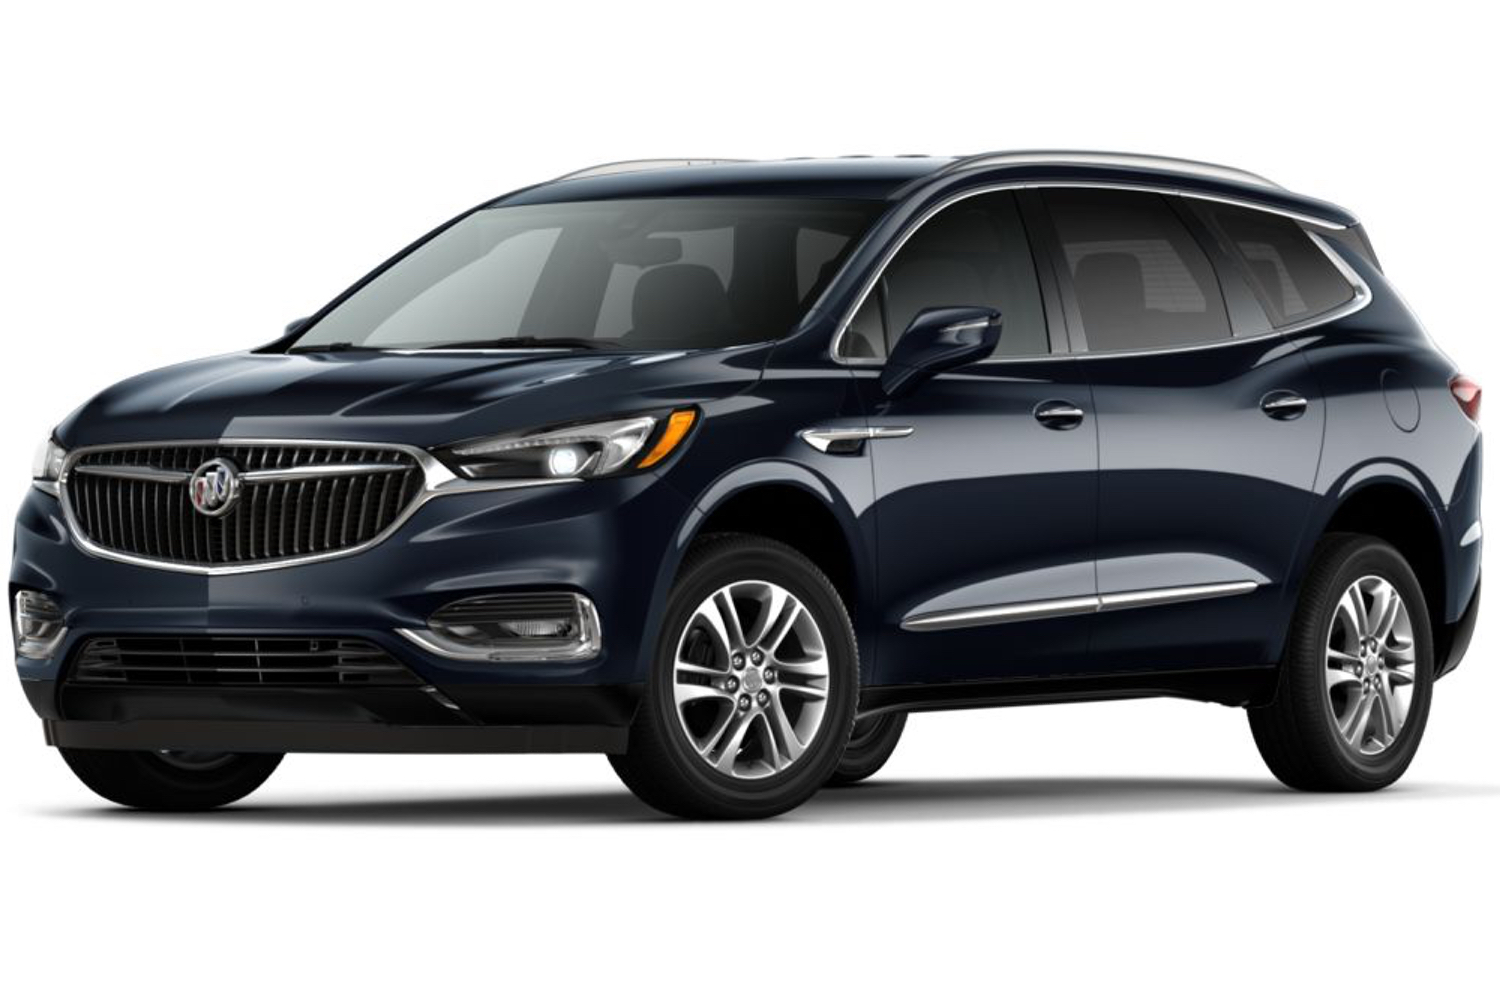 new 2022 buick enclave avenir owners manual pictures